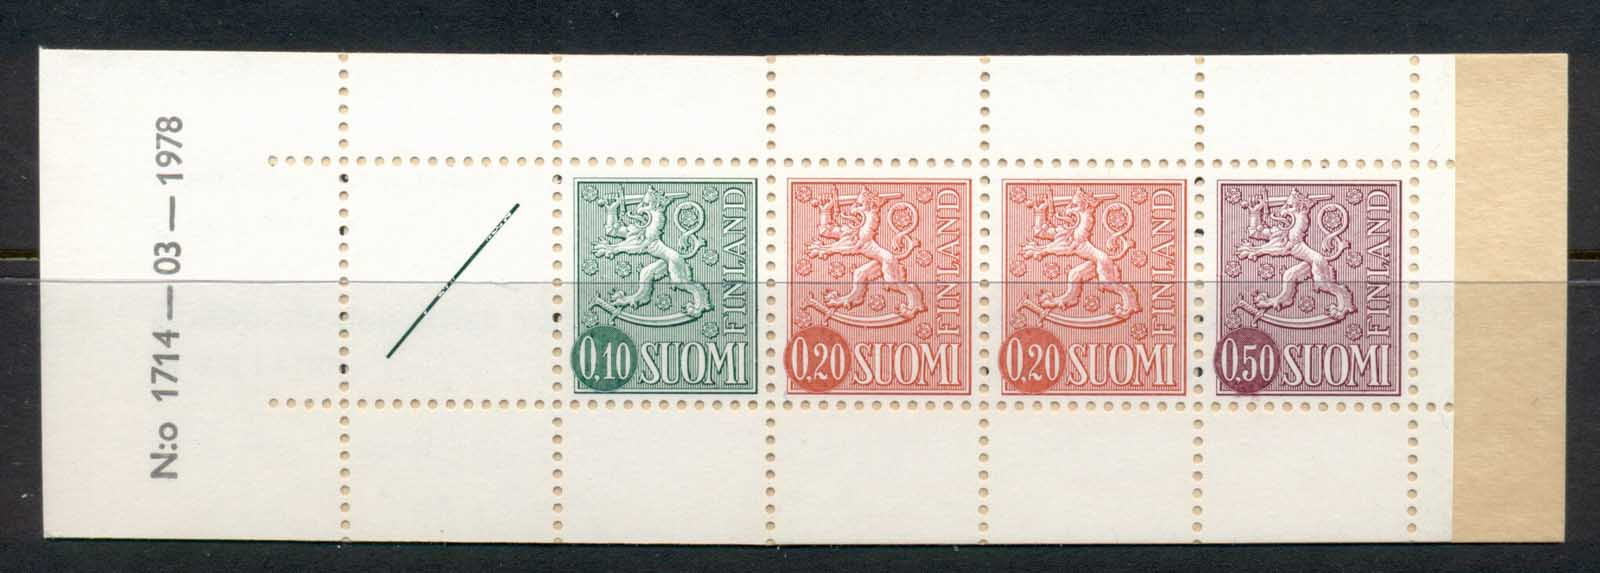 Finland 1968-78 Arms of Finland booklet 1x10, 2x20, 1x50, 1 label green cover '78 MUH